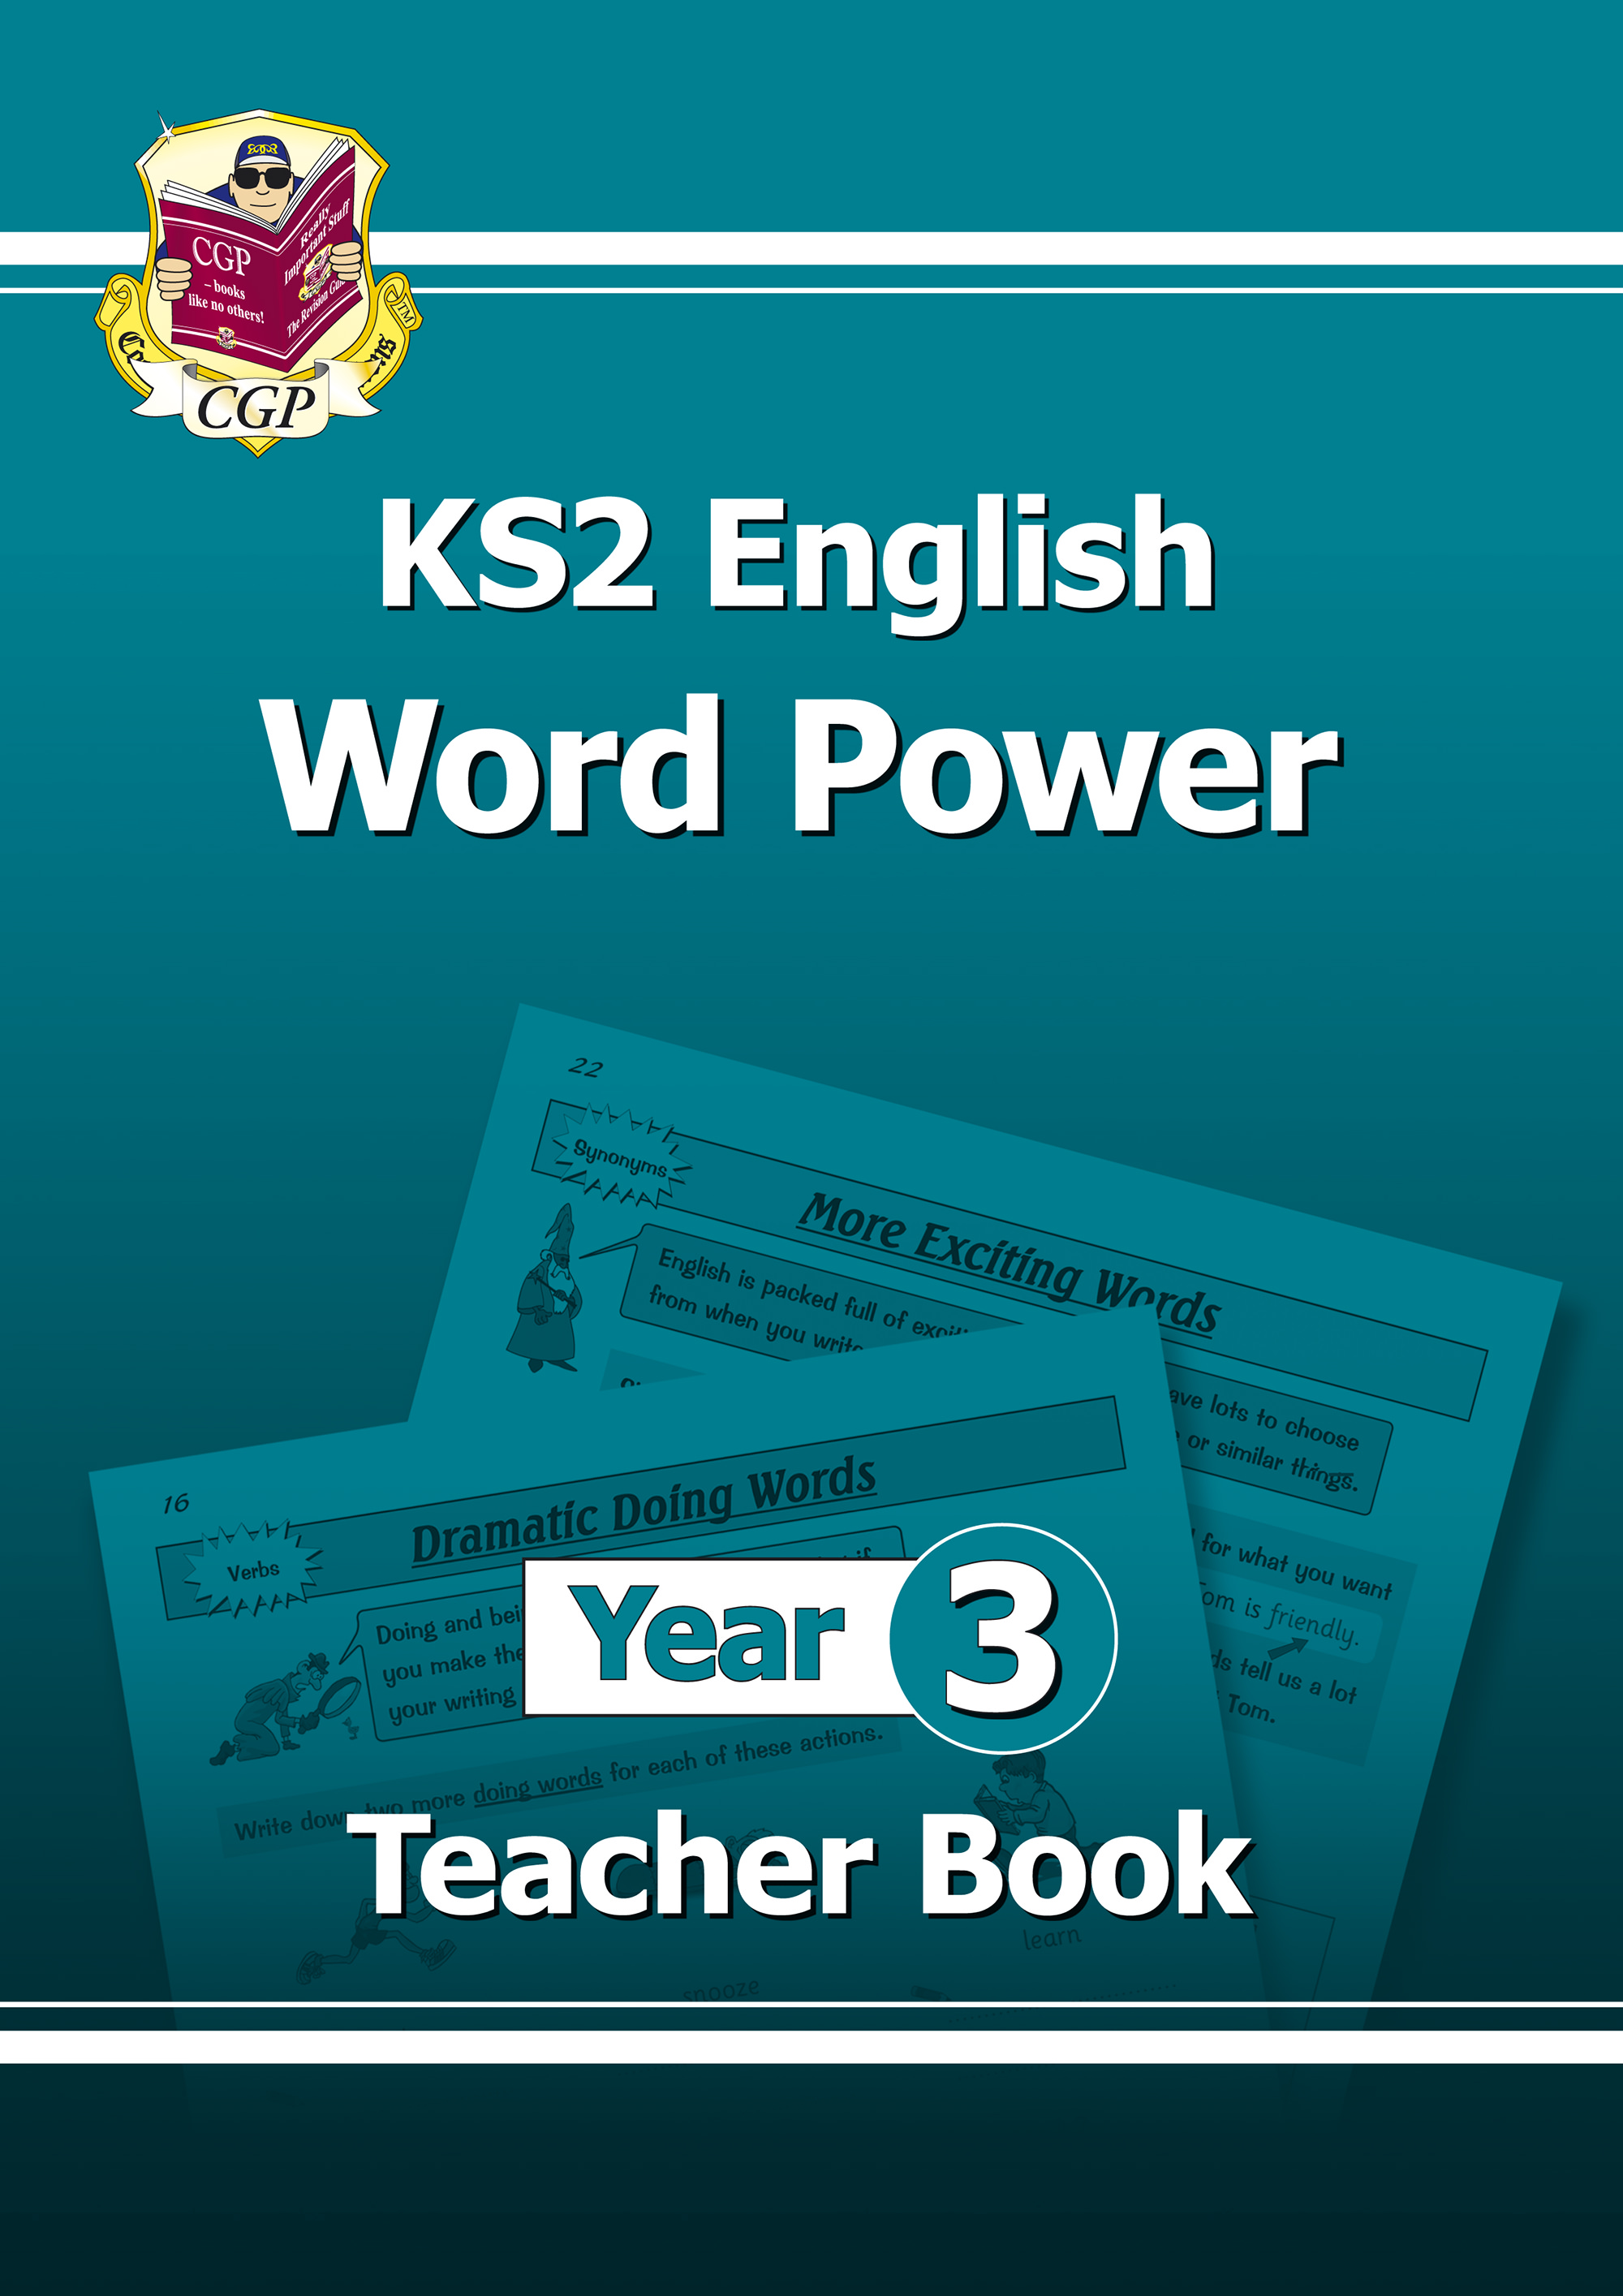 E3WPT21 - KS2 English Word Power: Teacher Book - Year 3